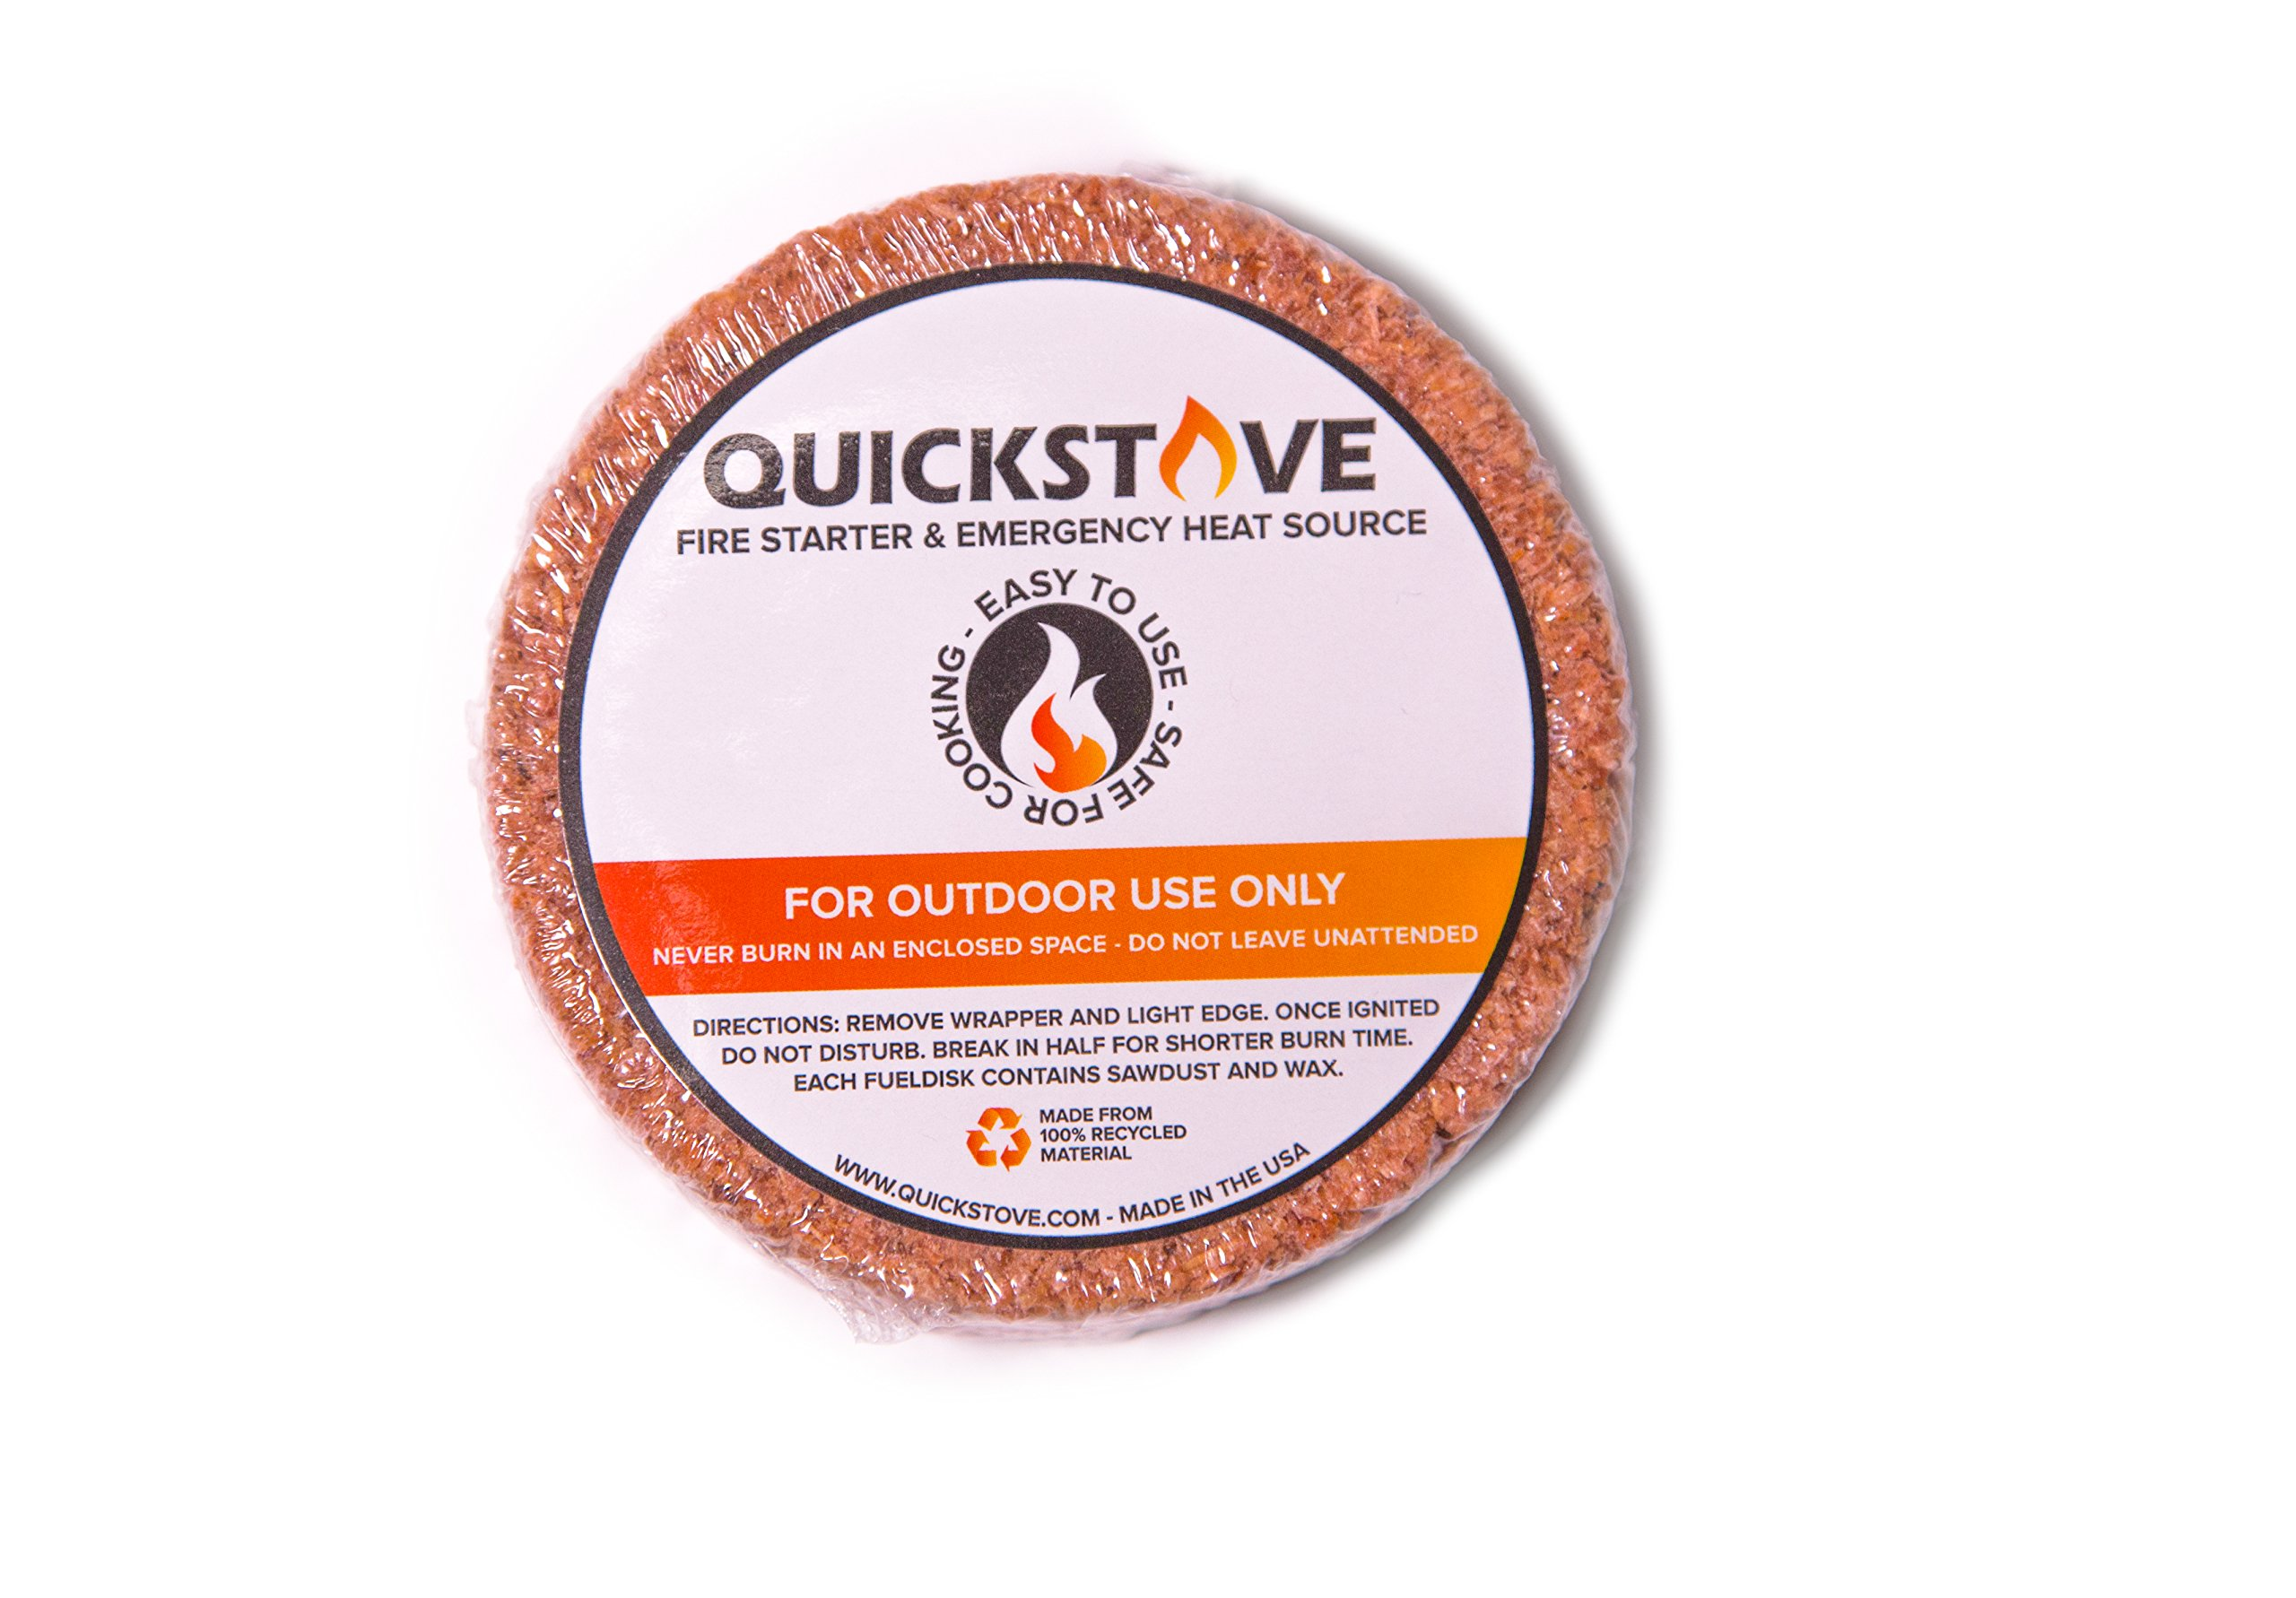 Natural Waterproof Survival & Camping Fuel Disk Fire Starters - Pack of 20 - 10 hour burn time - Made of Cedar & Wax - Perfect for camping, hiking, backpacking & emergency preparedness by QuickStove by QuickStove (Image #2)